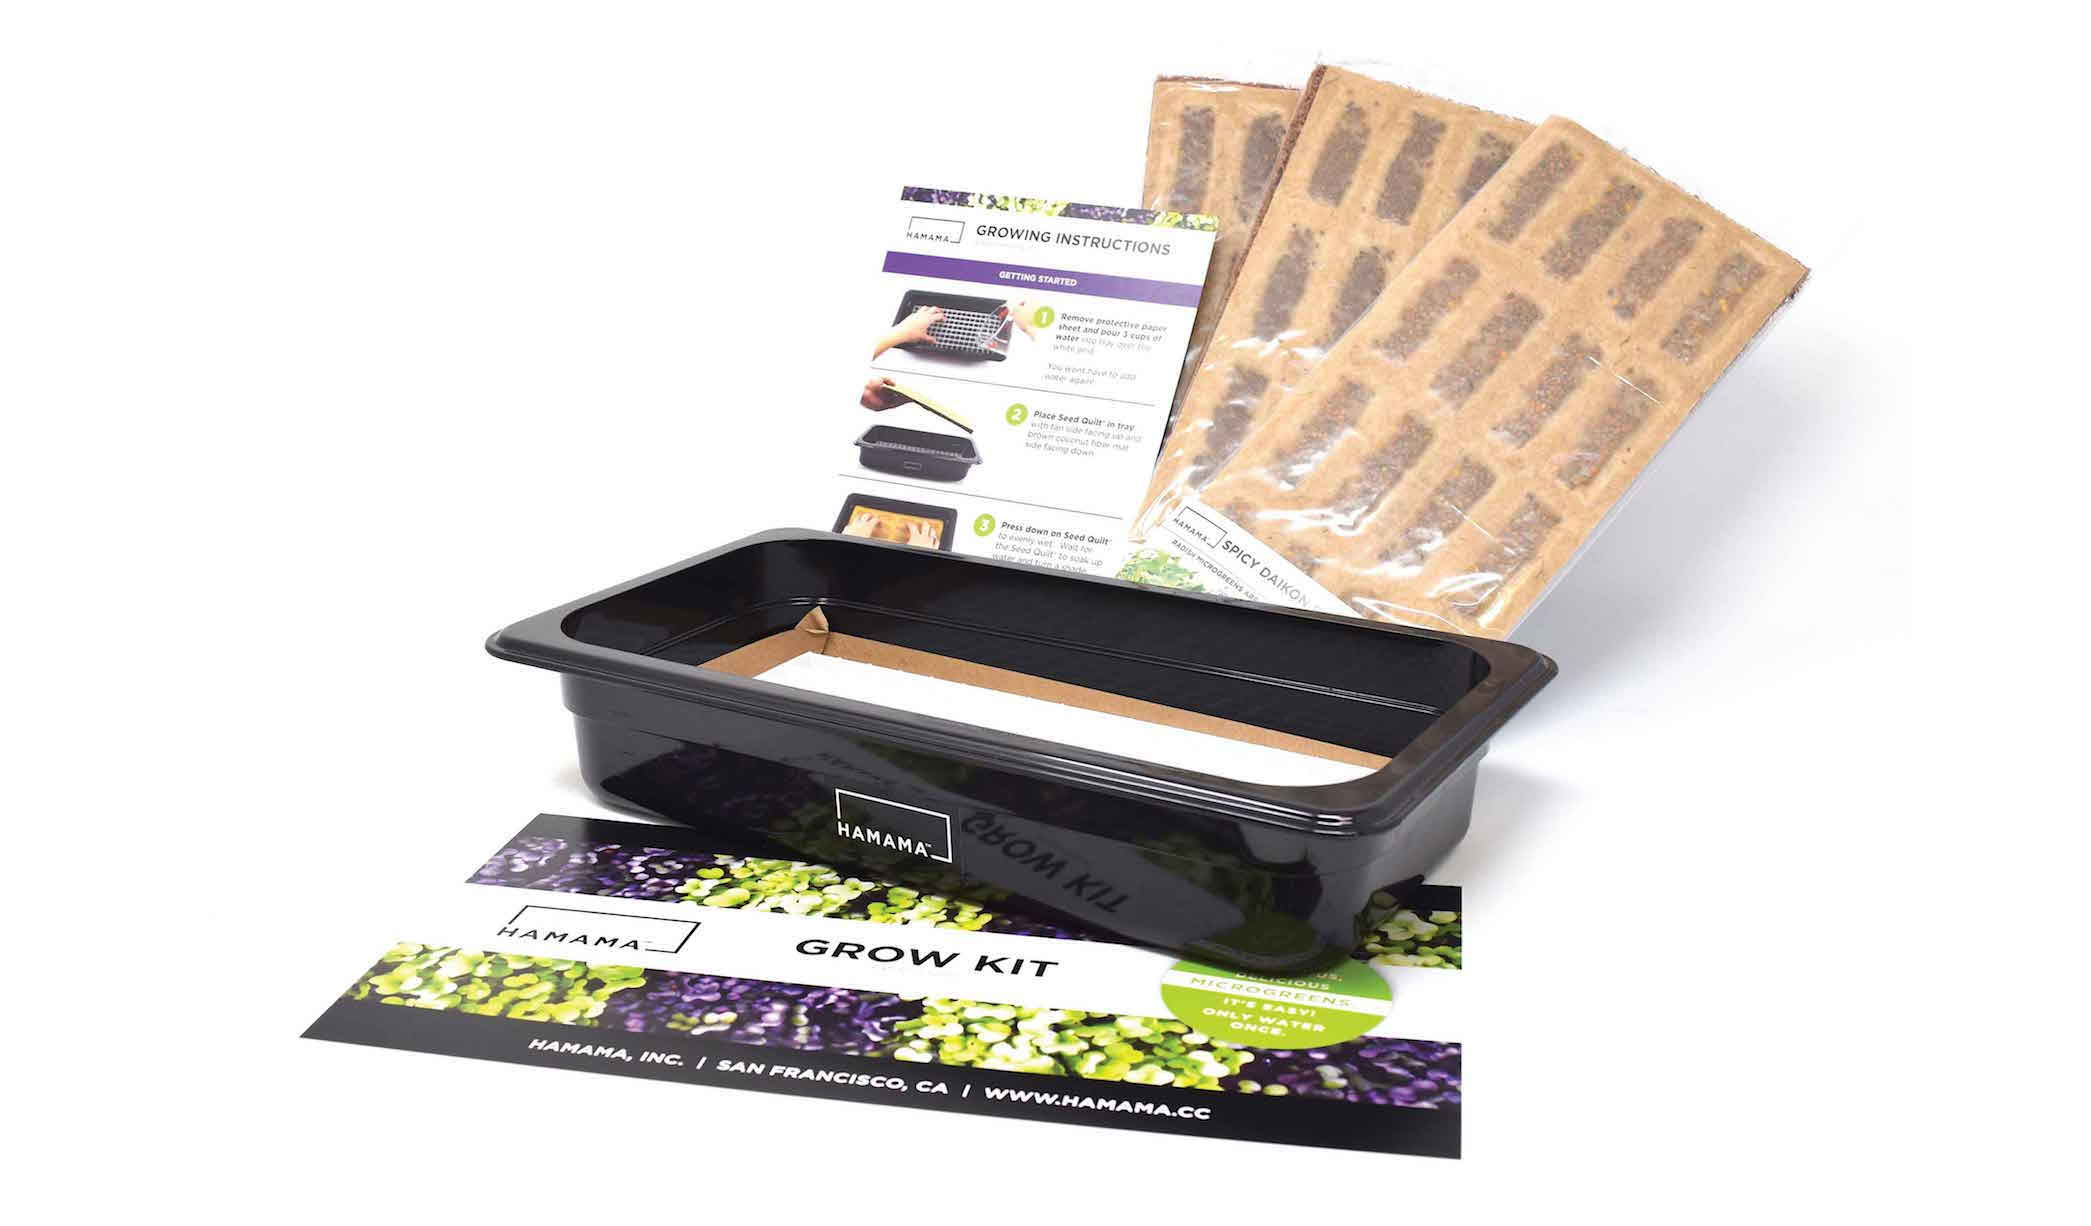 Microgreen kit for growing microgreens and micro herbs